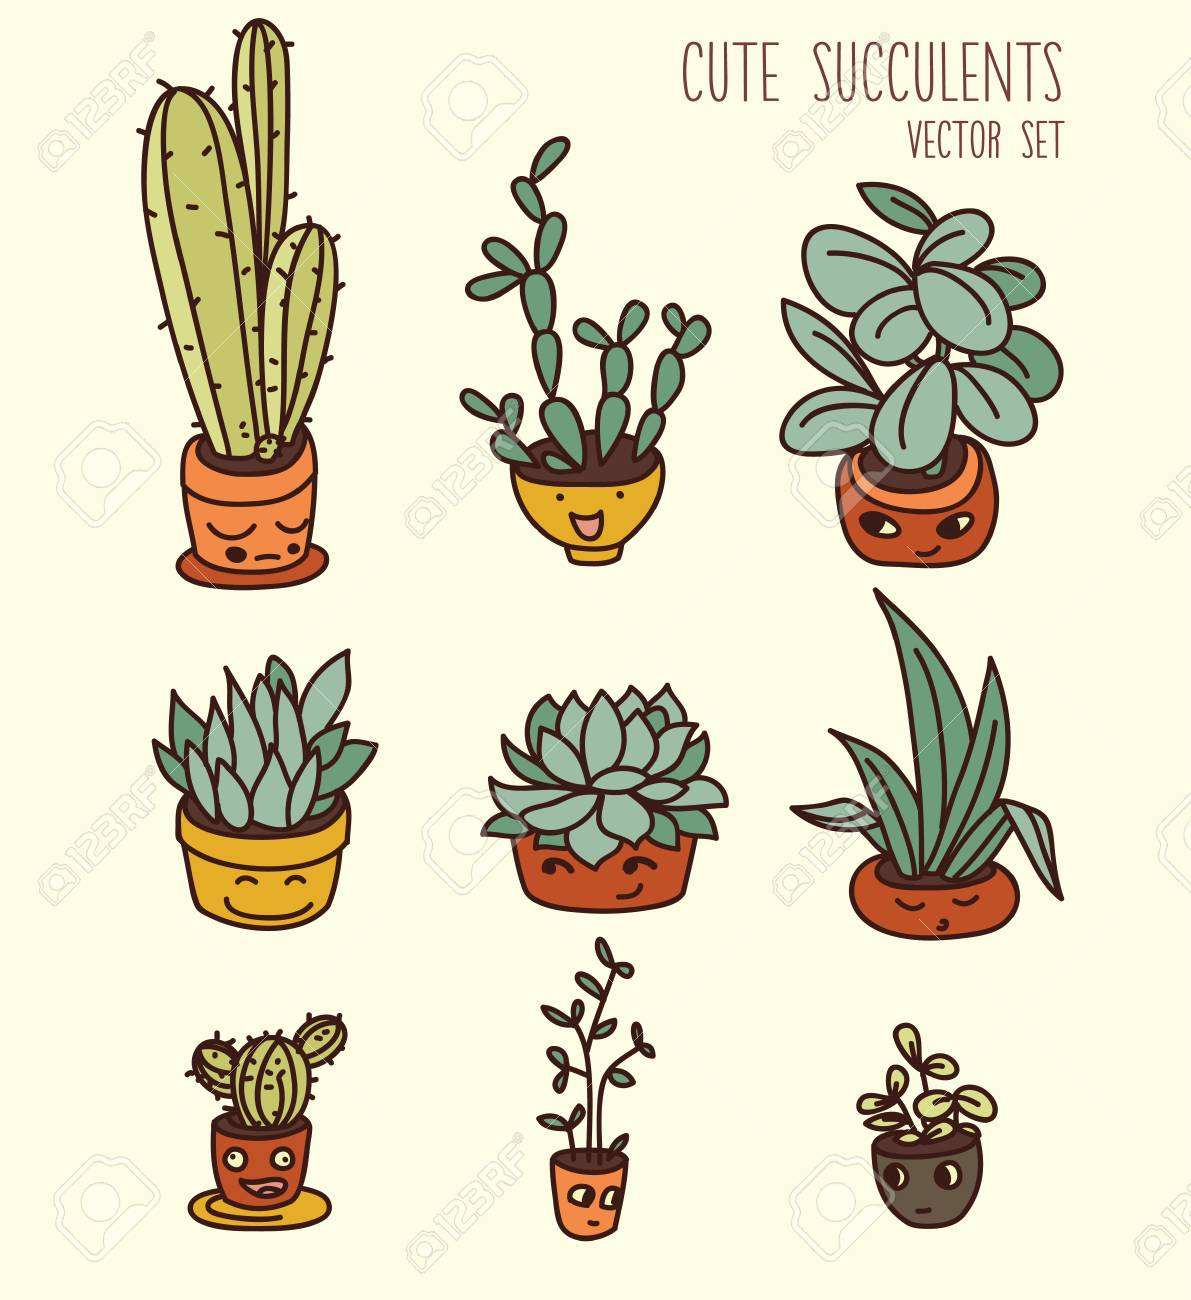 Set Of Cute Potted Plants Cartoon Style Vector Illustration Royalty Free Cliparts Vectors And Stock Illustration Image 85688643